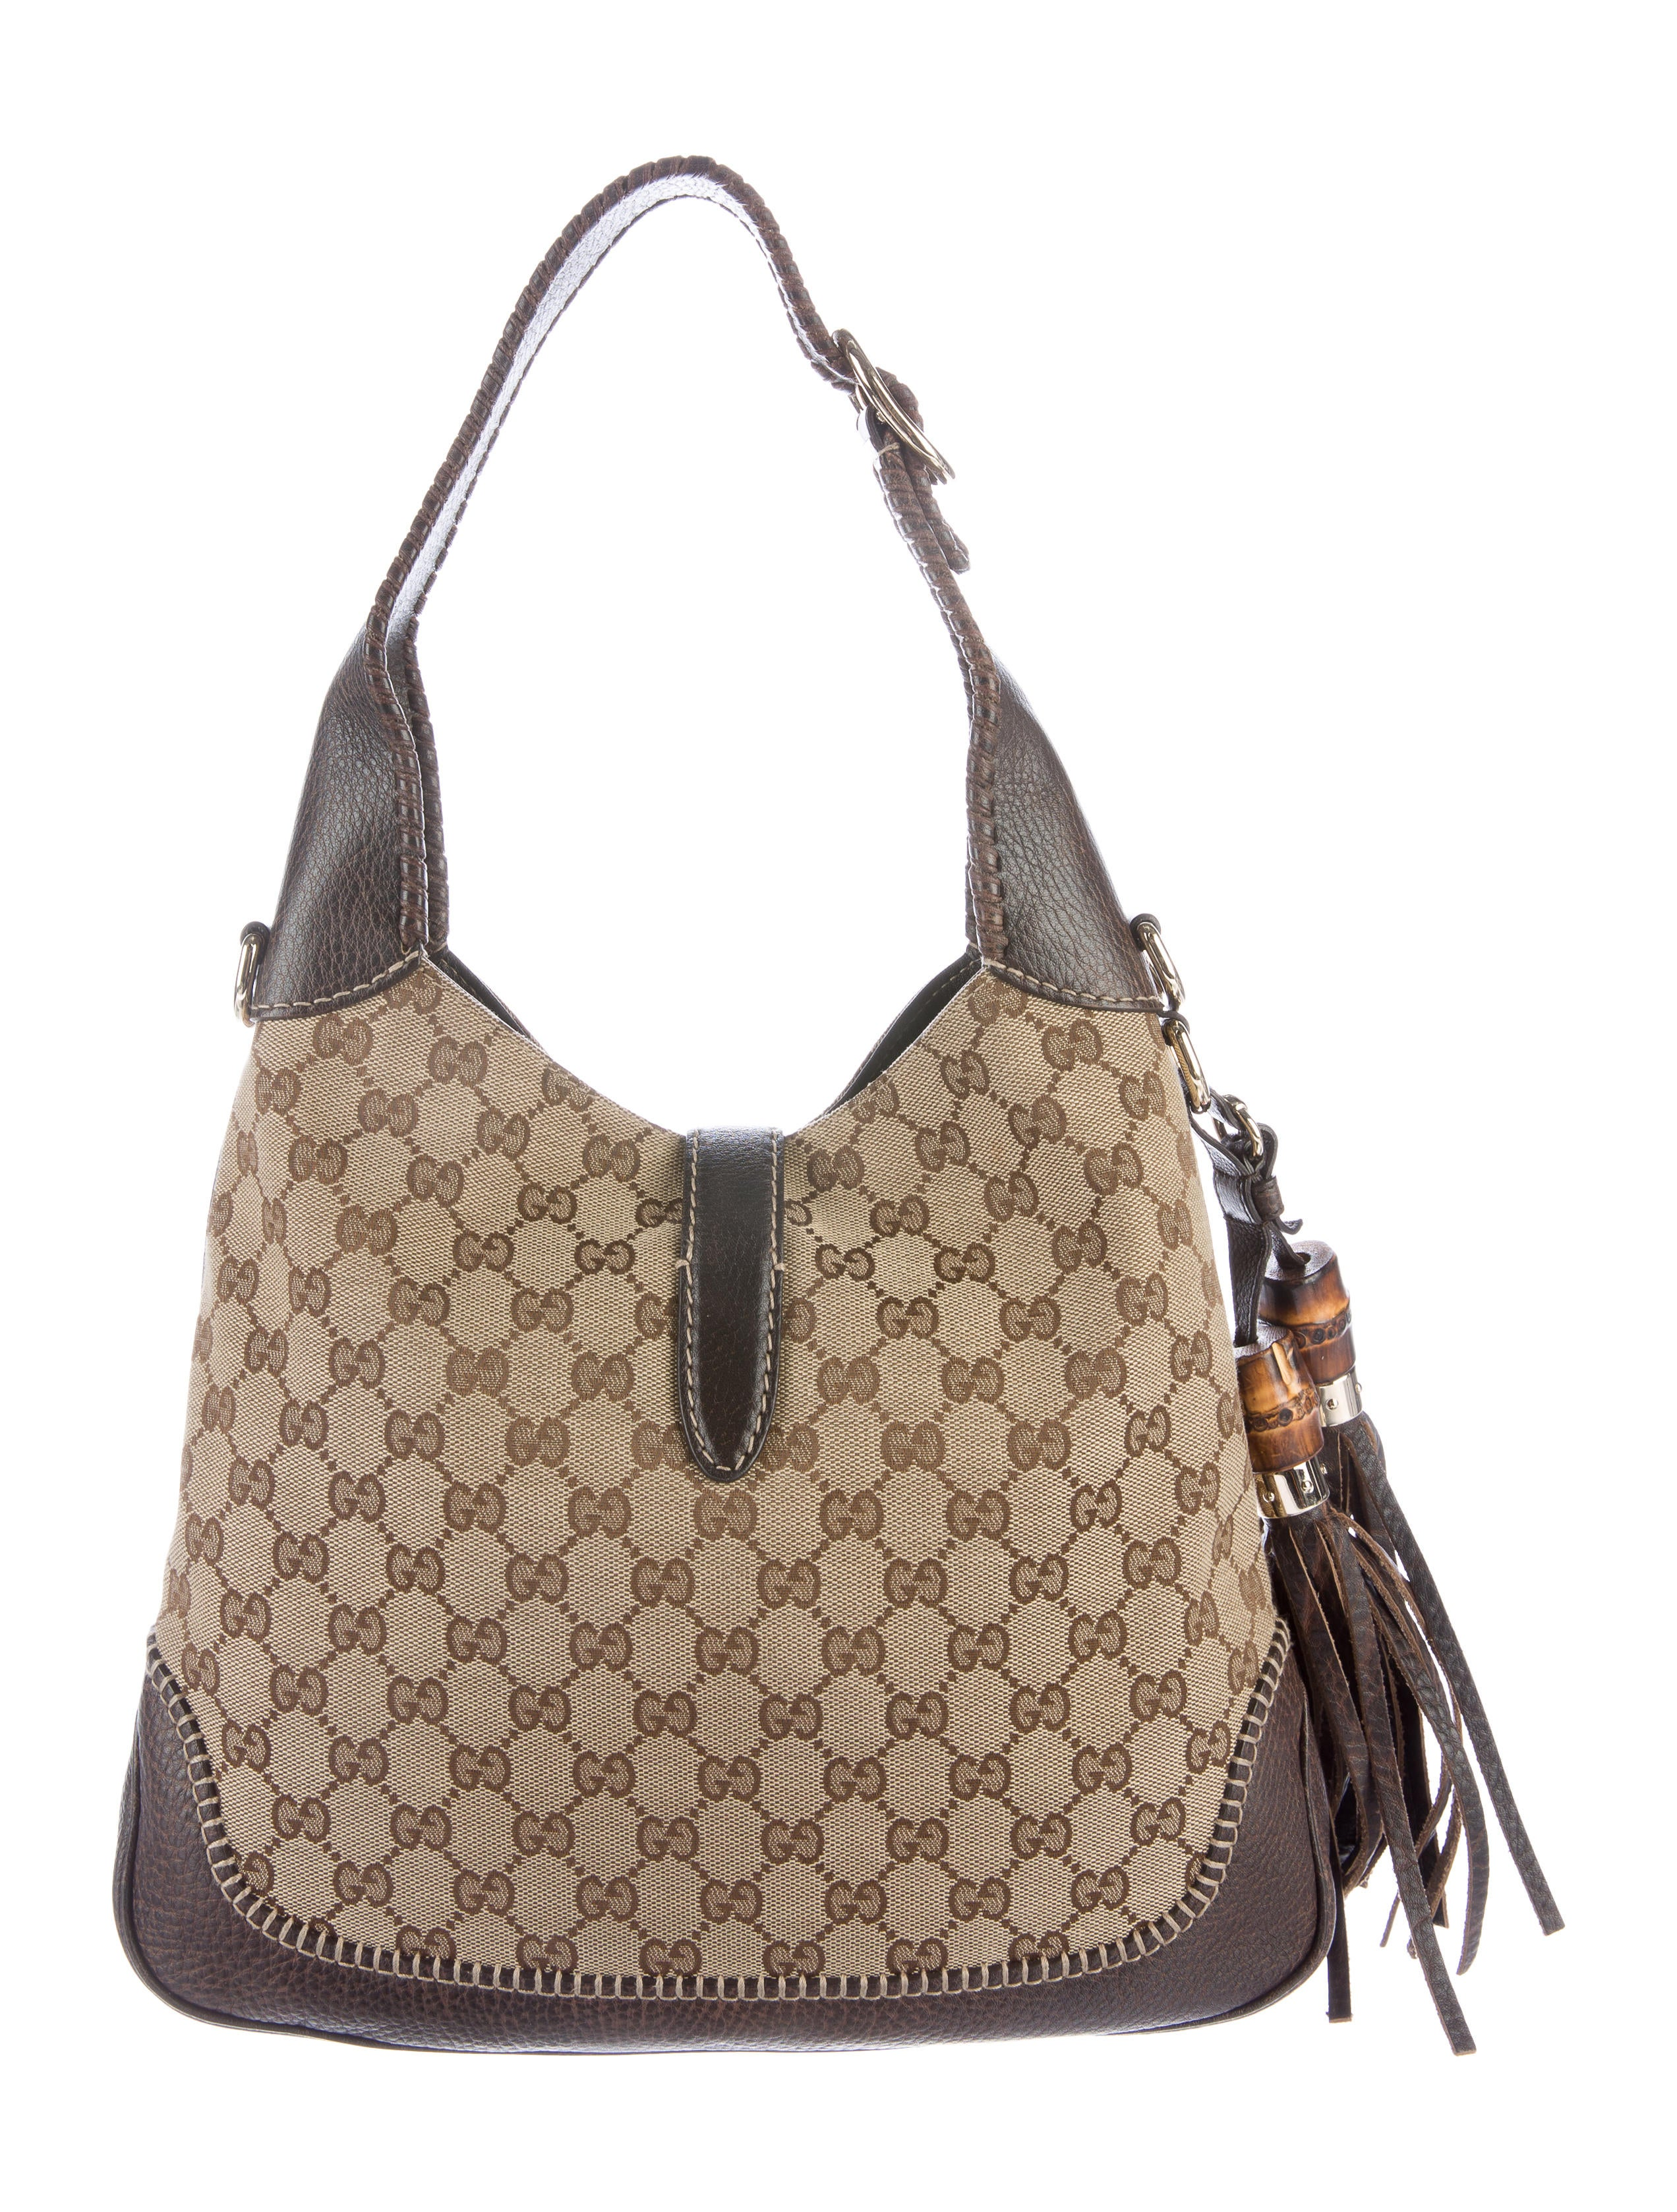 62f0374e12a1 Gucci New Jackie Hobo Bag | Stanford Center for Opportunity Policy ...